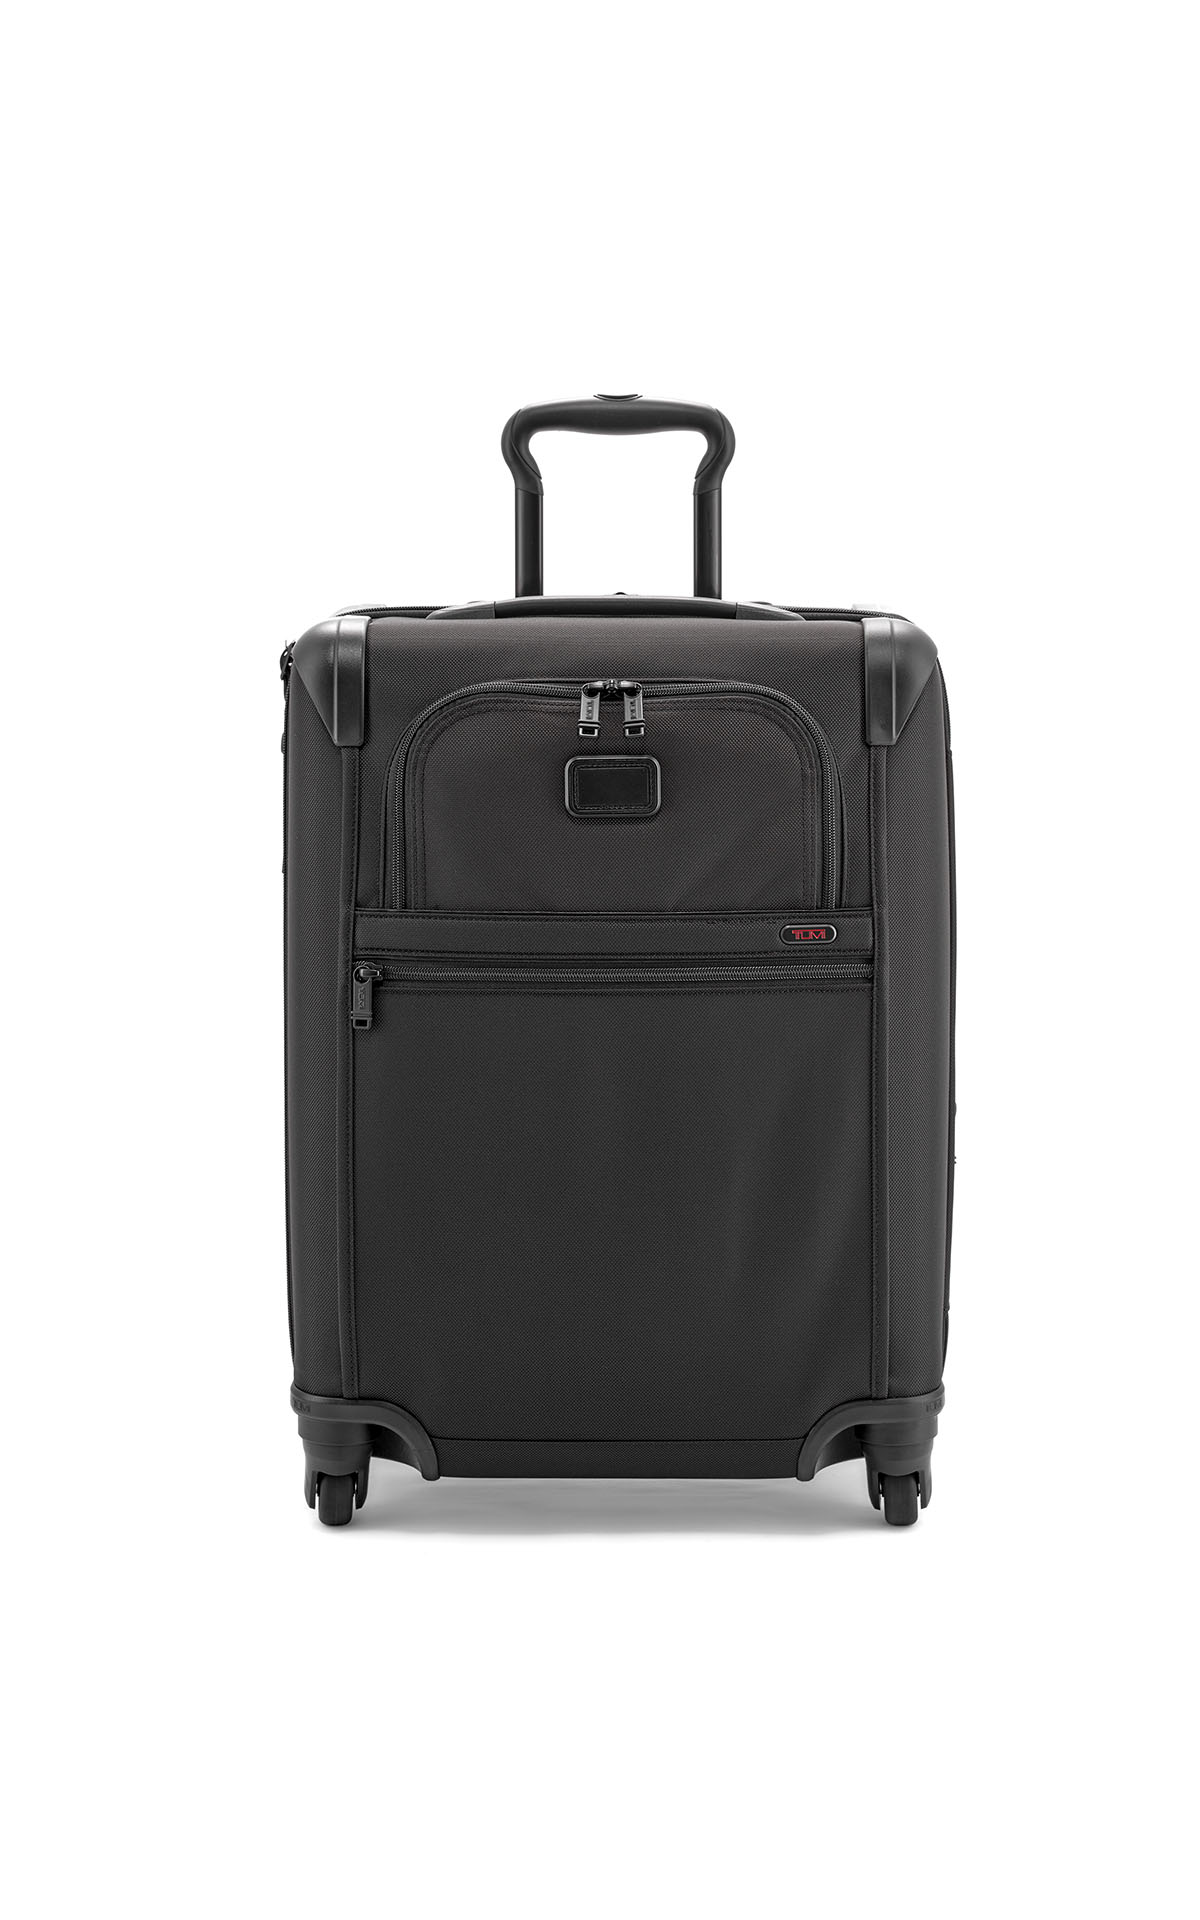 Tumi Cntl 4whl carry-on at The Bicester Village Shopping Collection